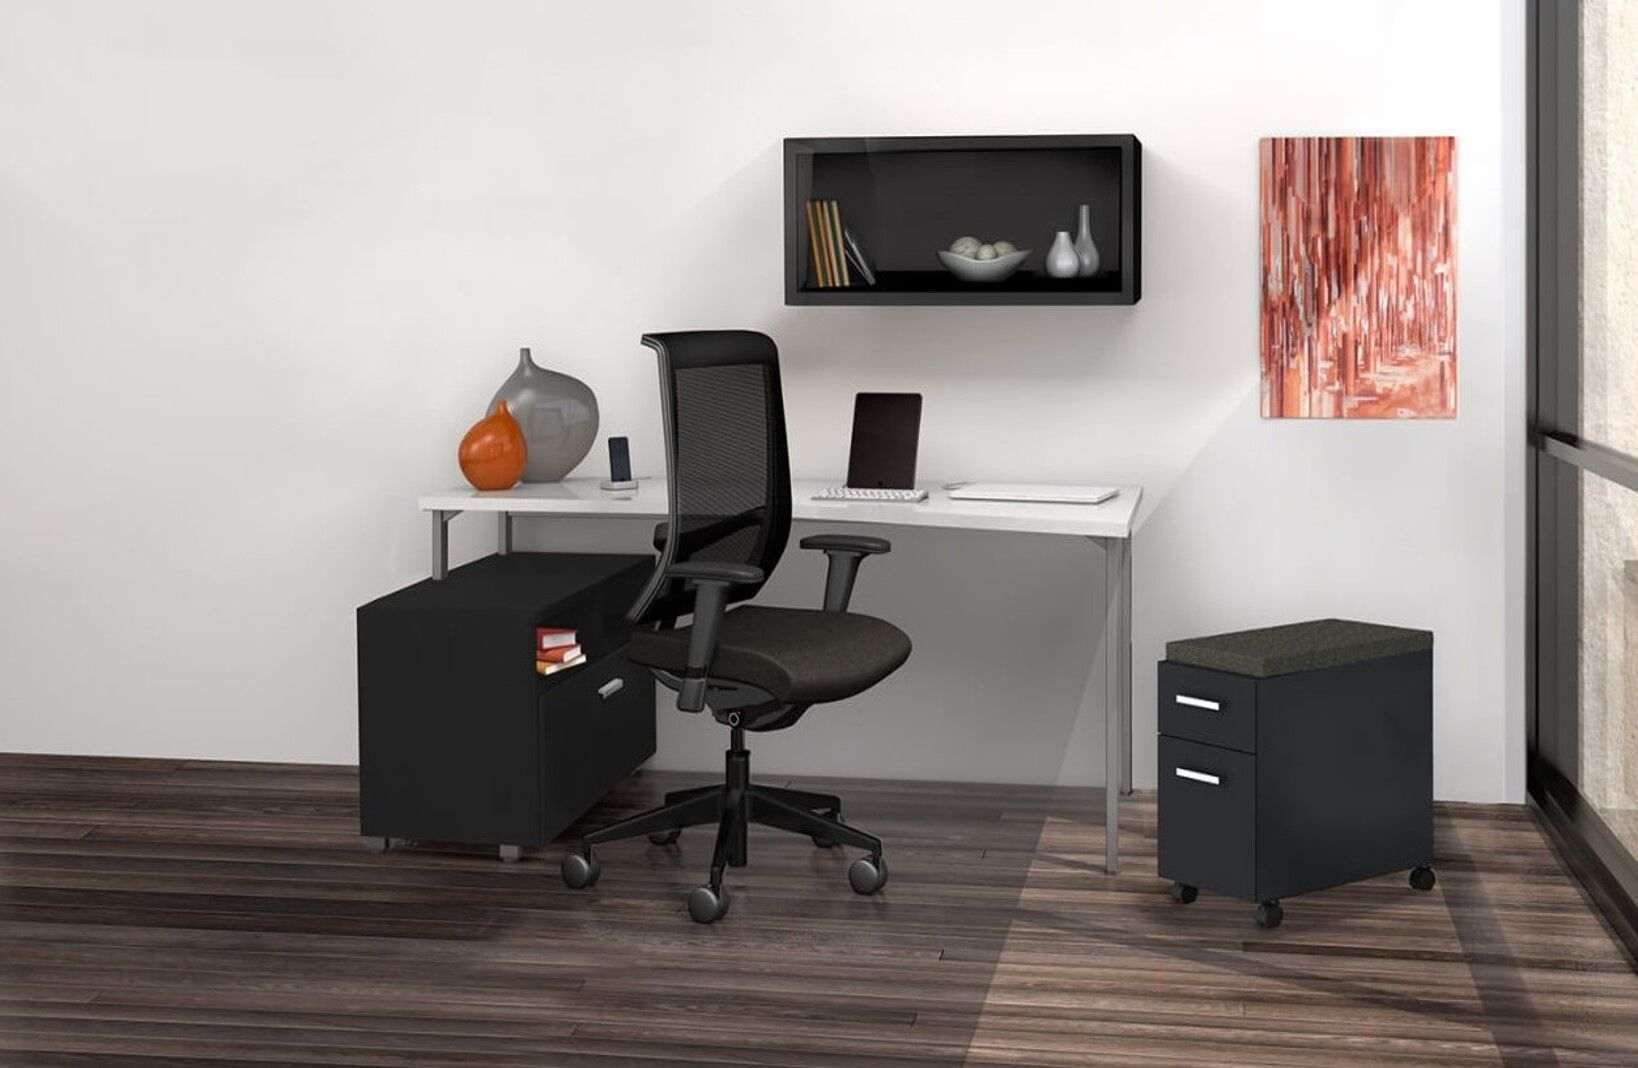 lshaped-desk-with-side-storage-environmental_preview.jpg